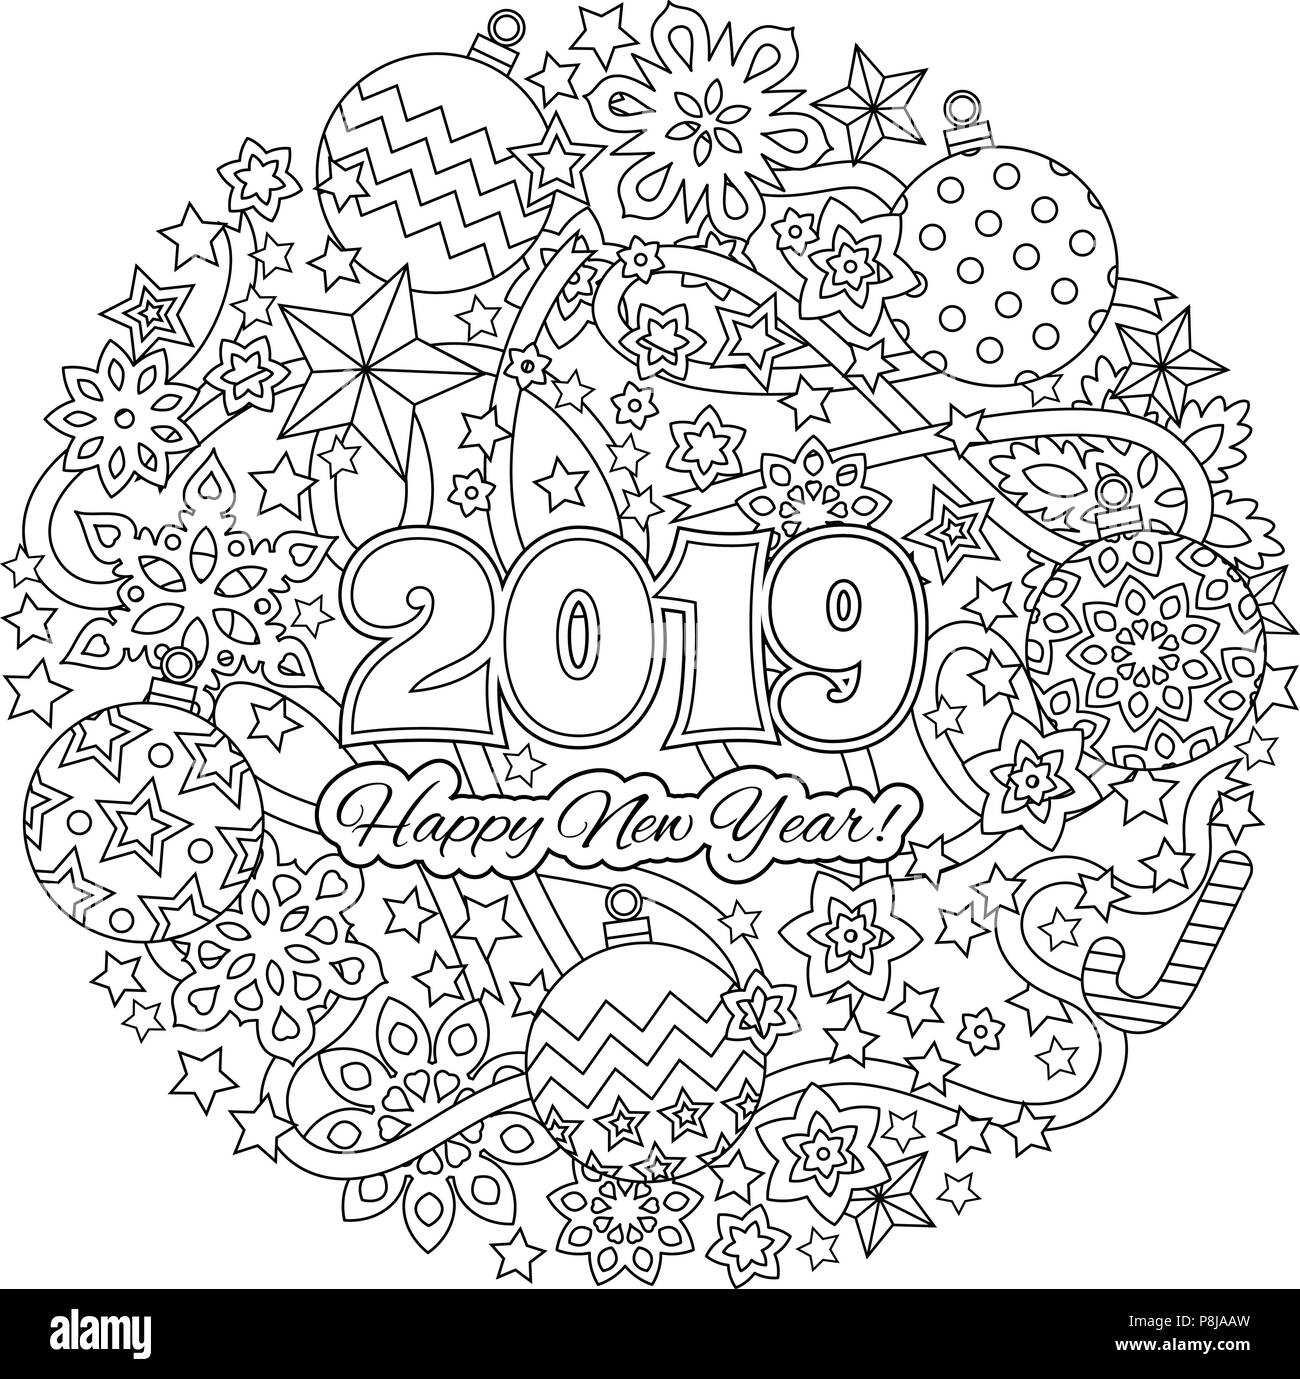 New Year Congratulation Card With Numbers 2018 On Winter Holiday Background Christmas Mandala Antistress Coloring Book For Adults